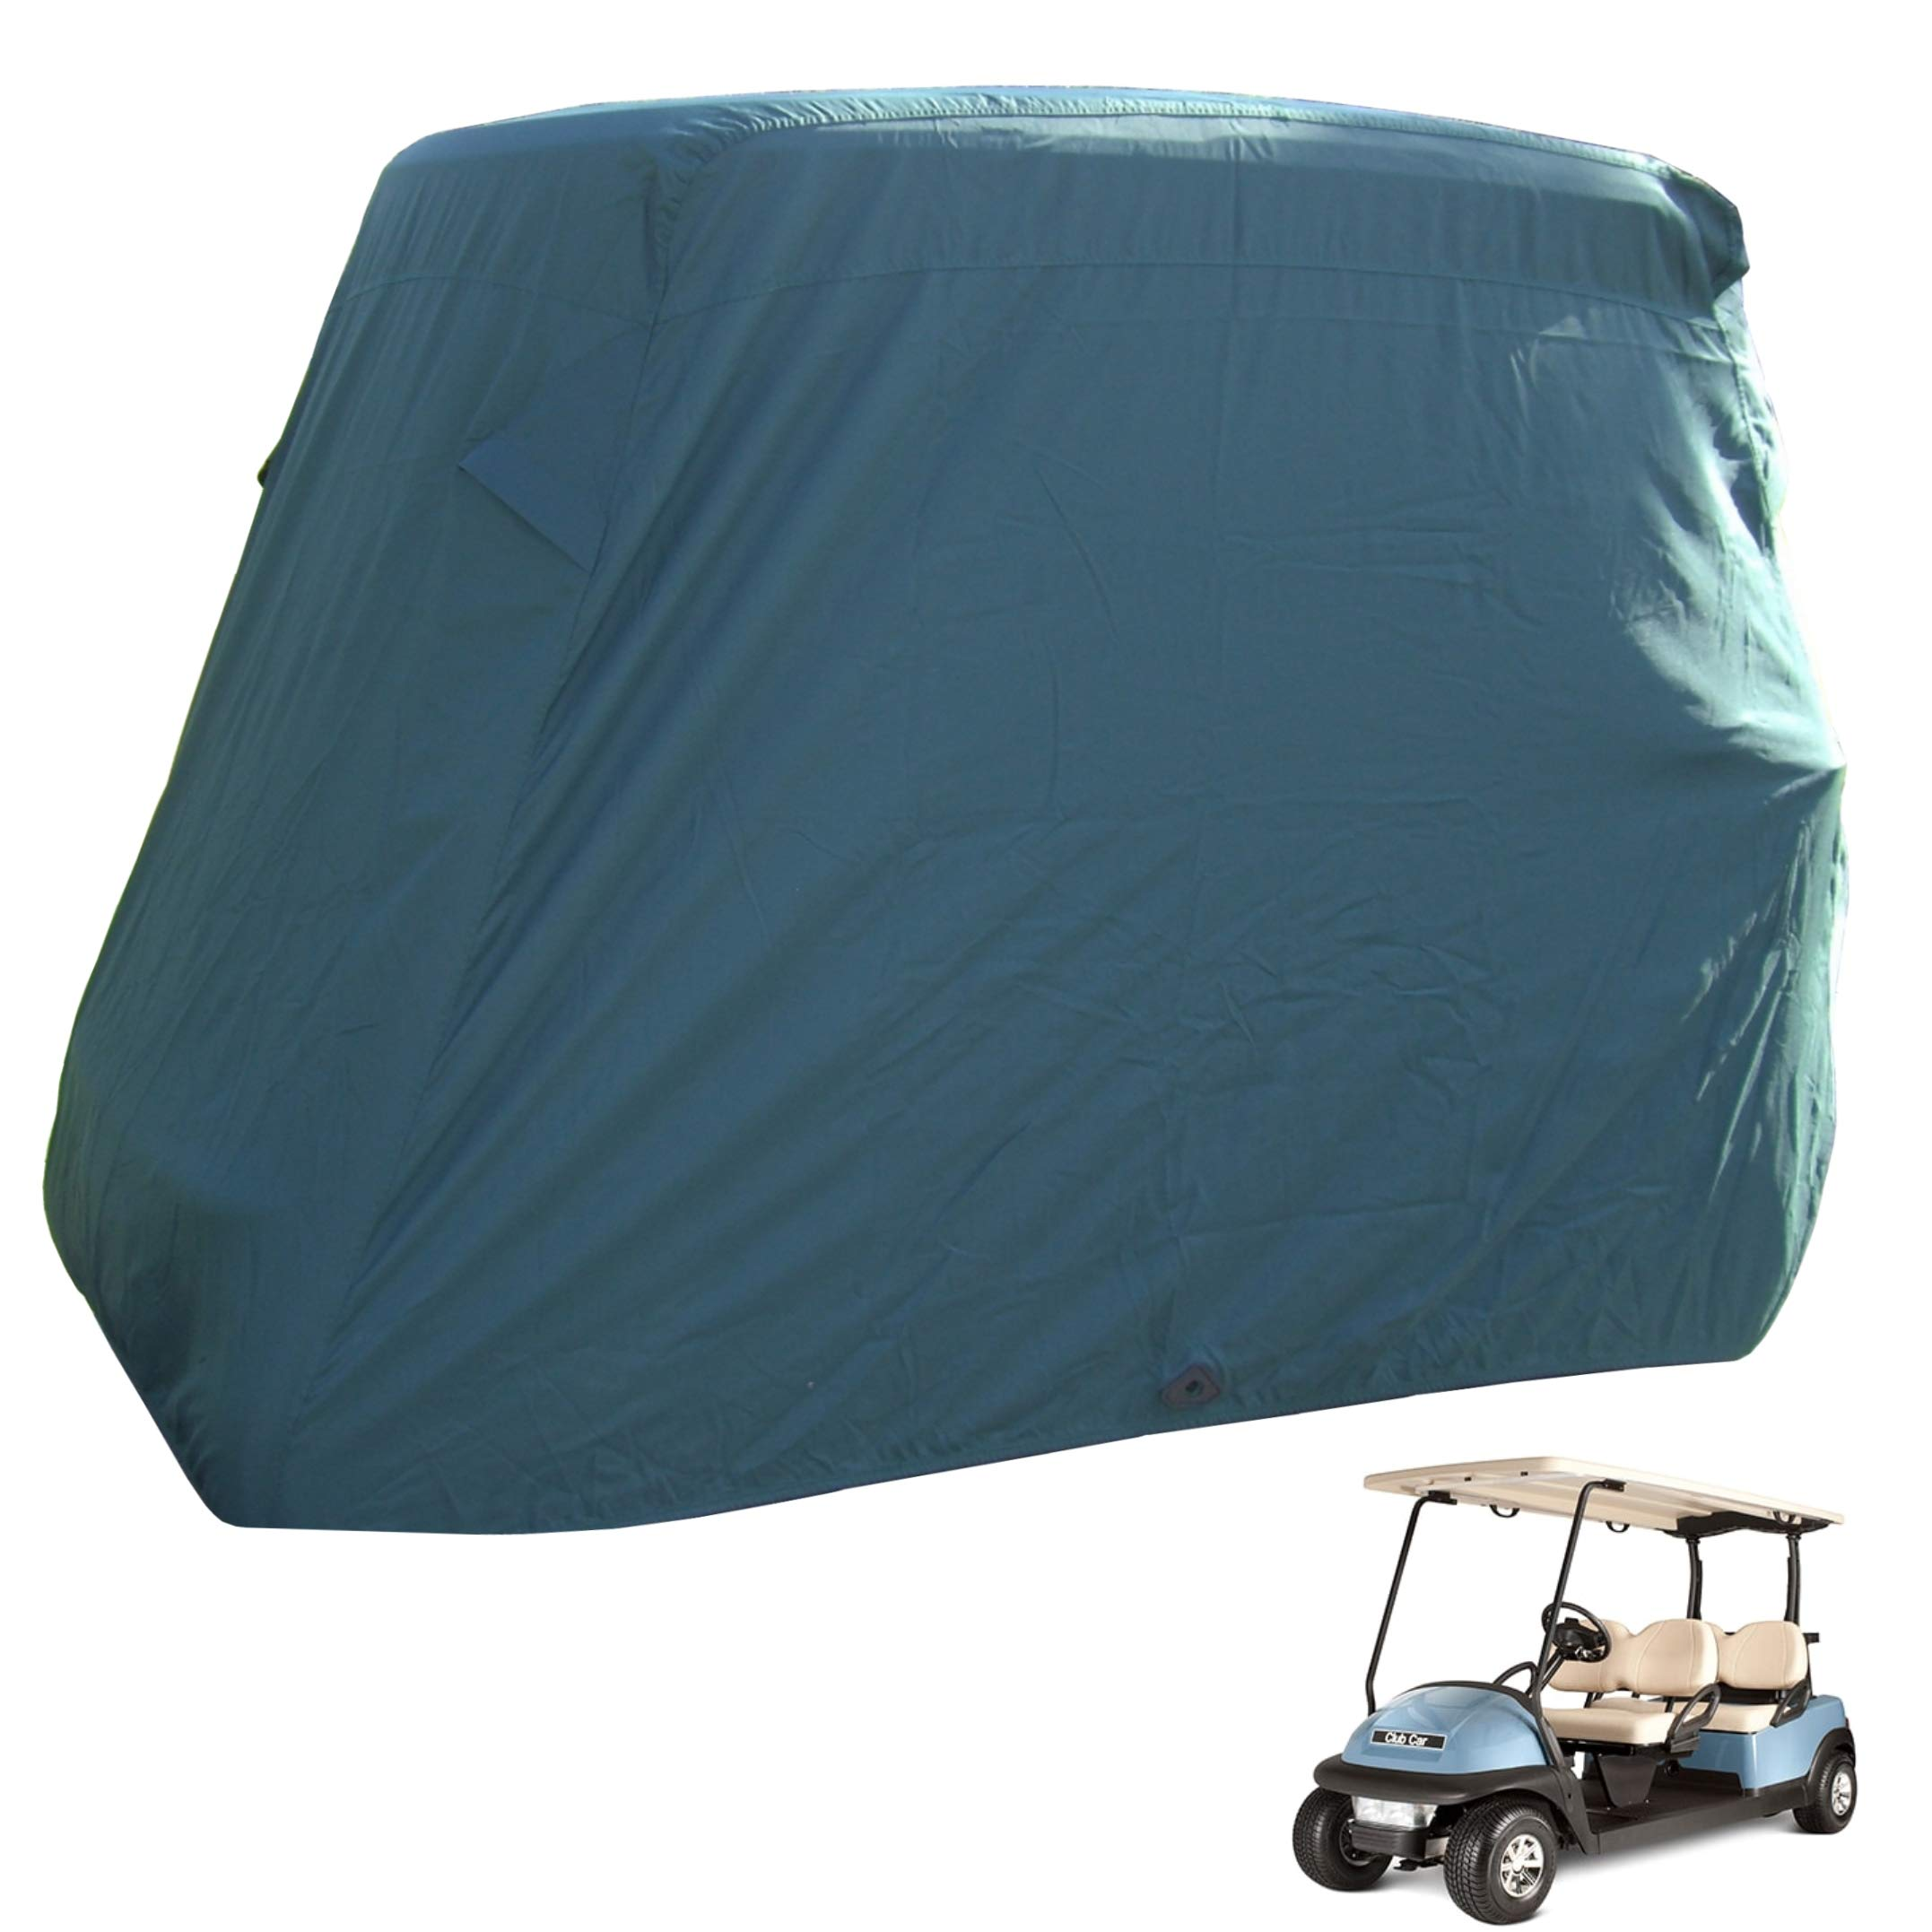 Golf Cart Cover 4 Seater roof up to 80''L Green, fits EZGO, Club Car and Yamaha G/YDR model